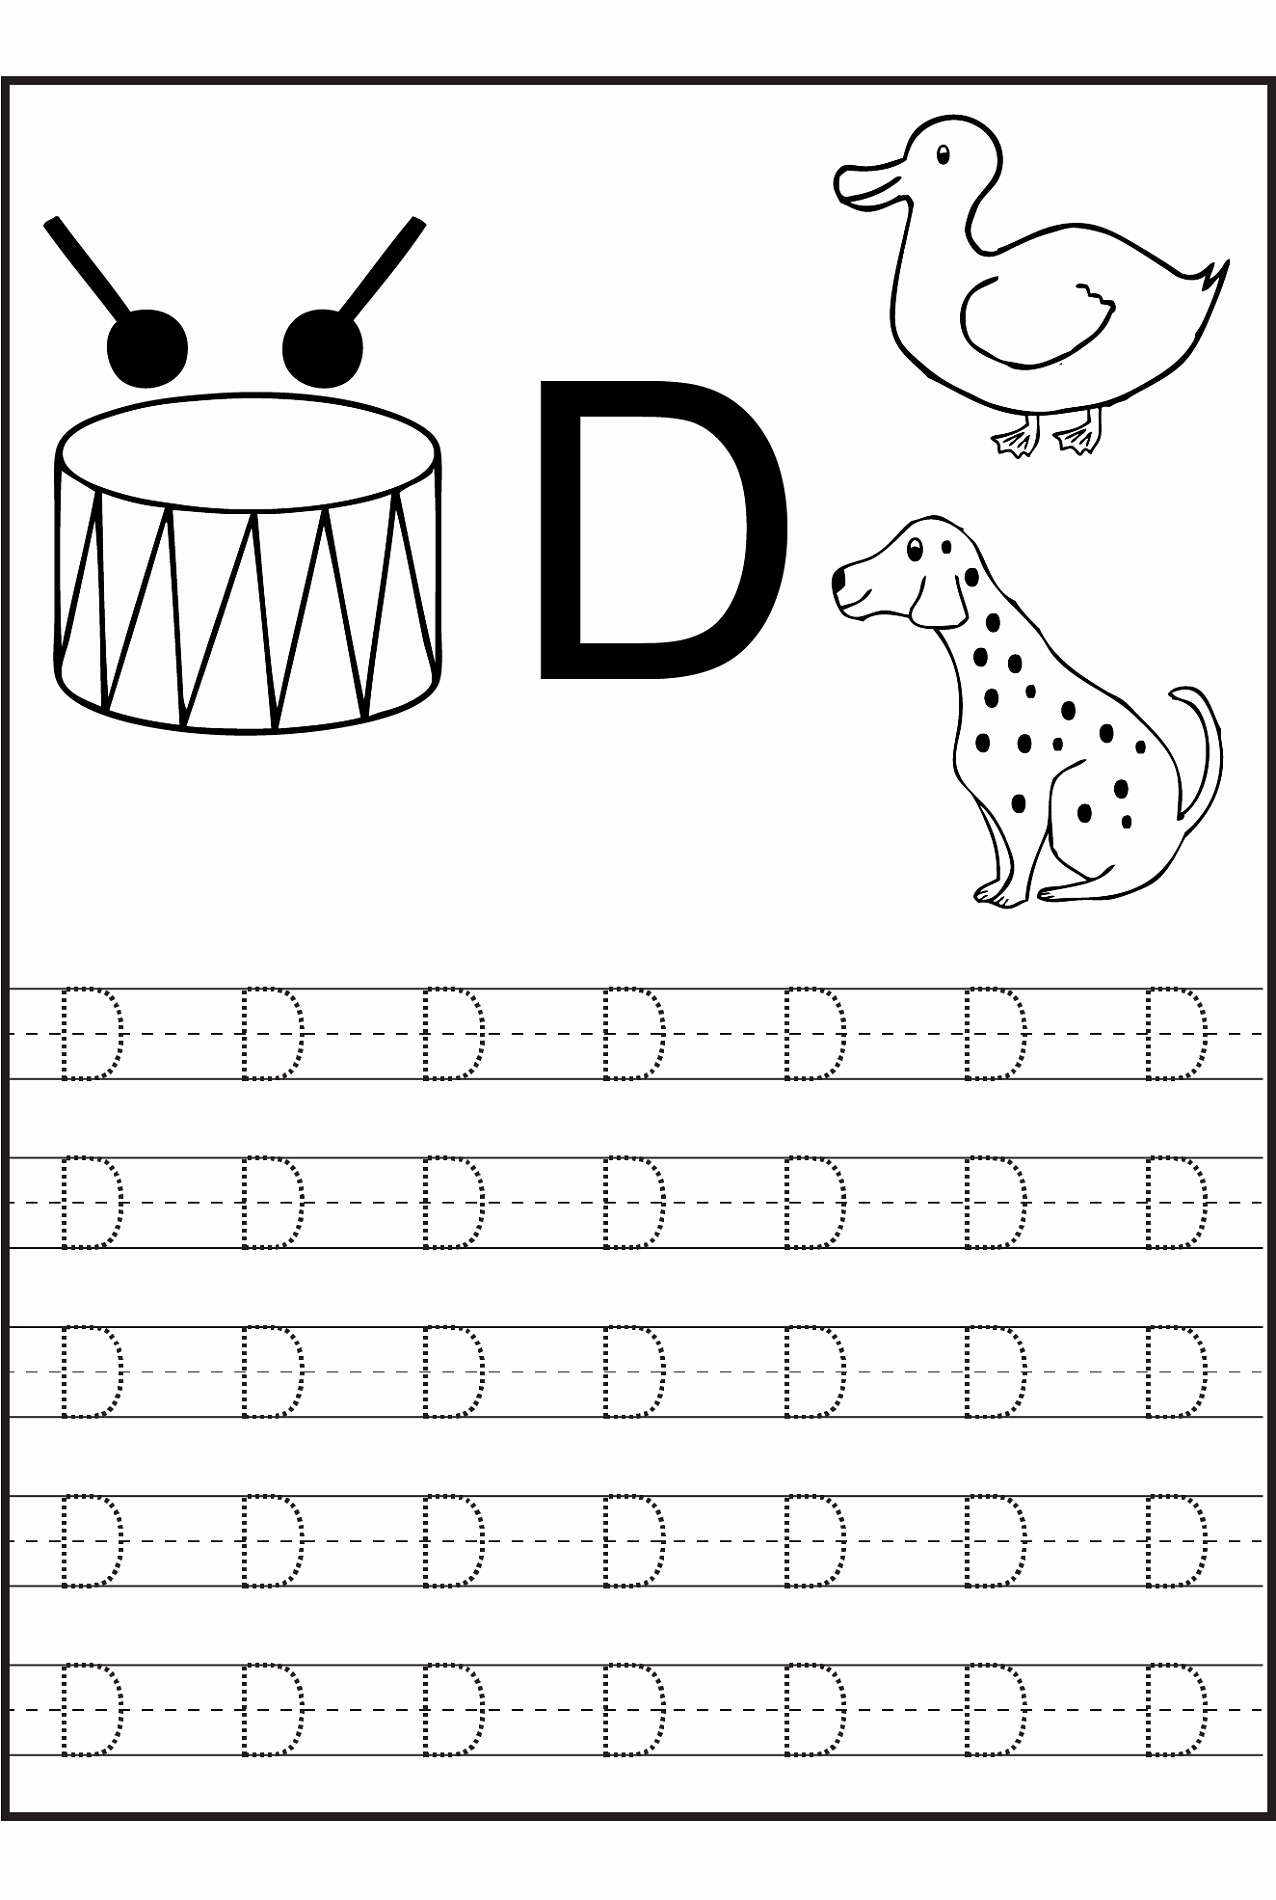 Letter D Worksheet for Preschool Beautiful Trace Letter D Worksheets